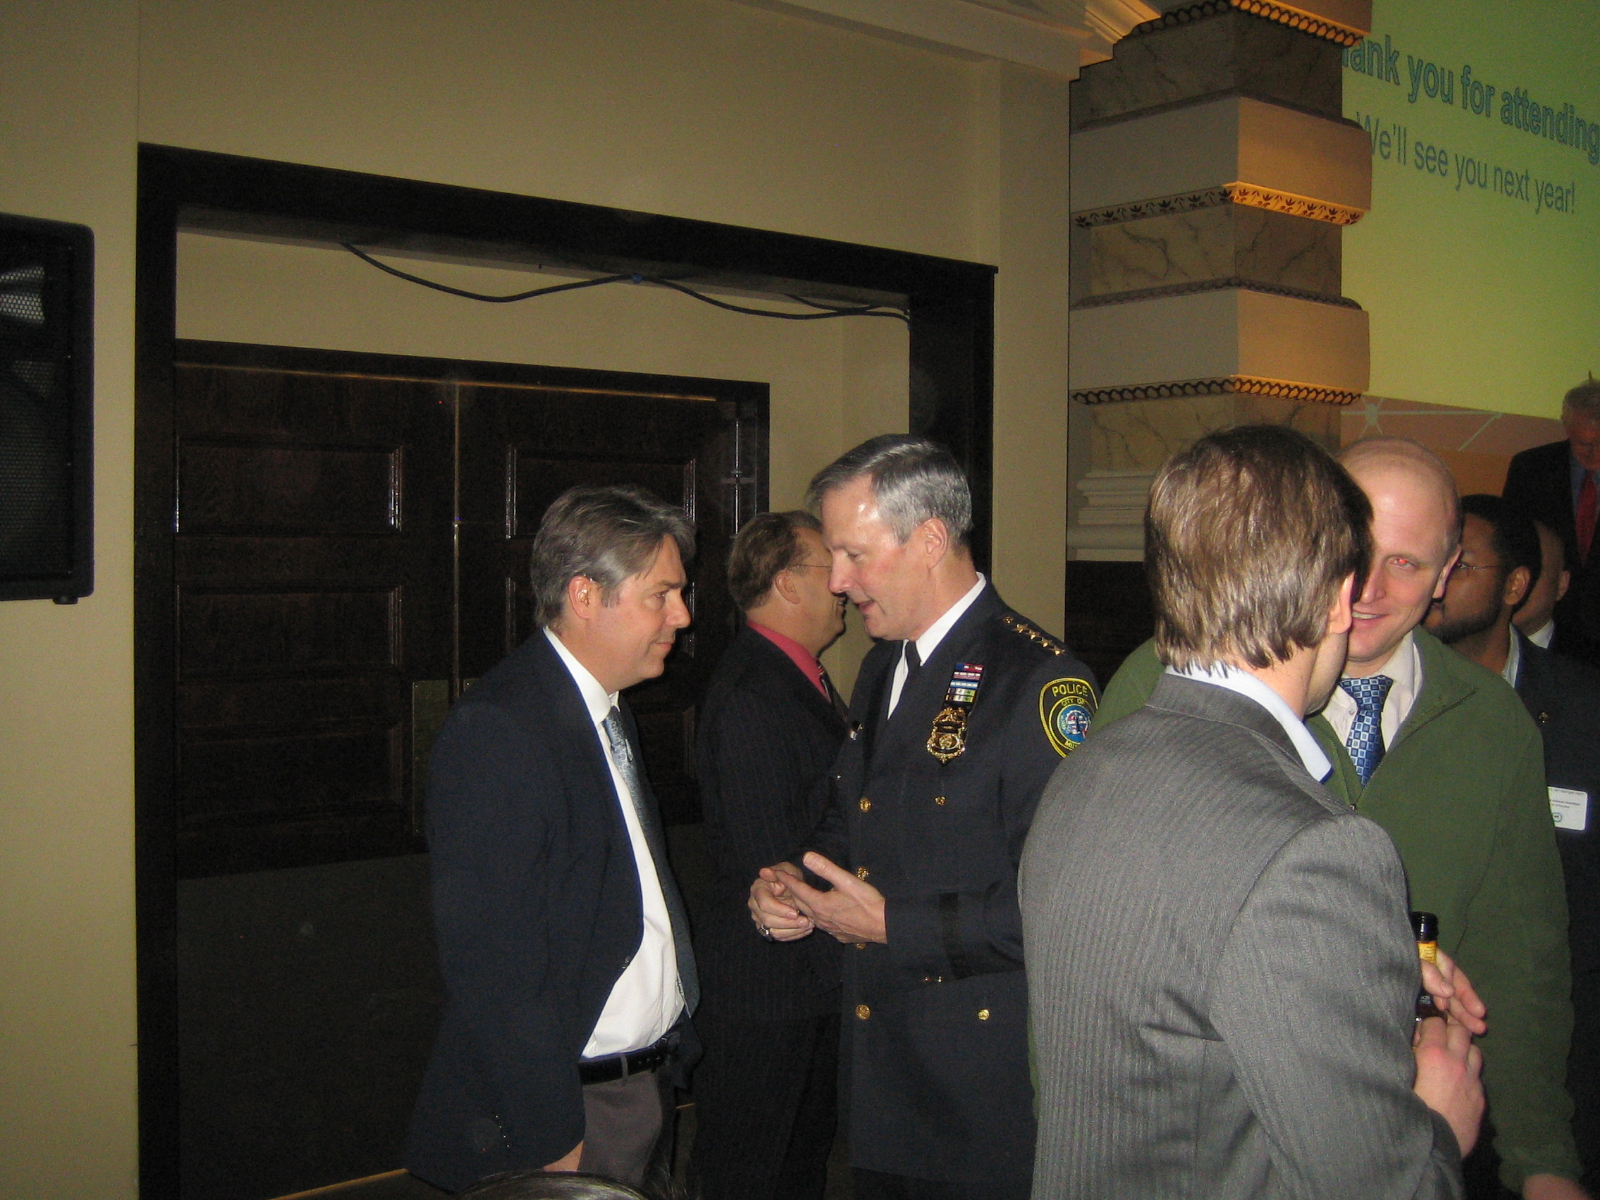 Ald. Michael Murphy (l), Chief Edward Flynn (r)